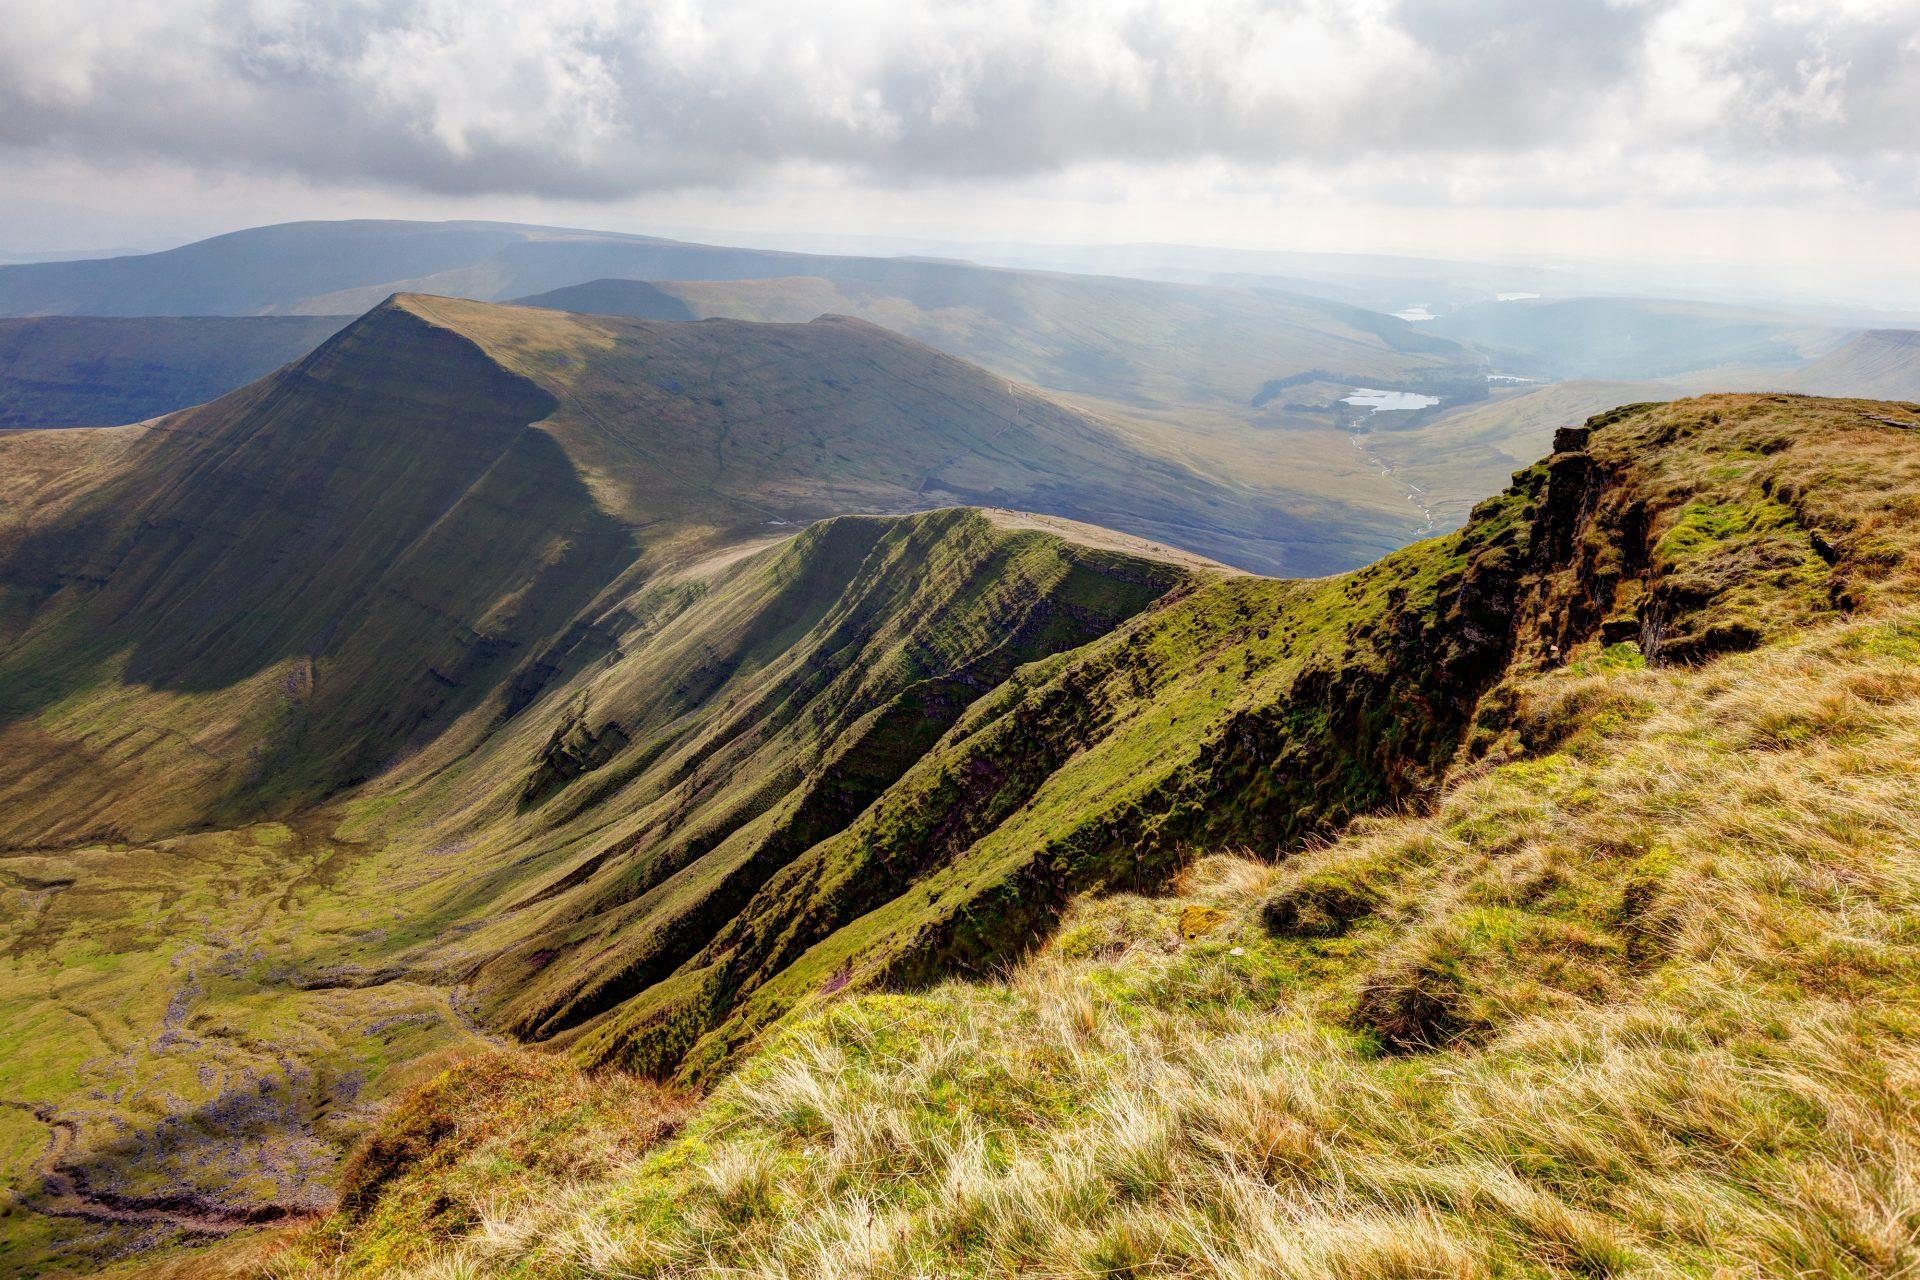 View of Brecon Beacons National Park from Pen Y Fan